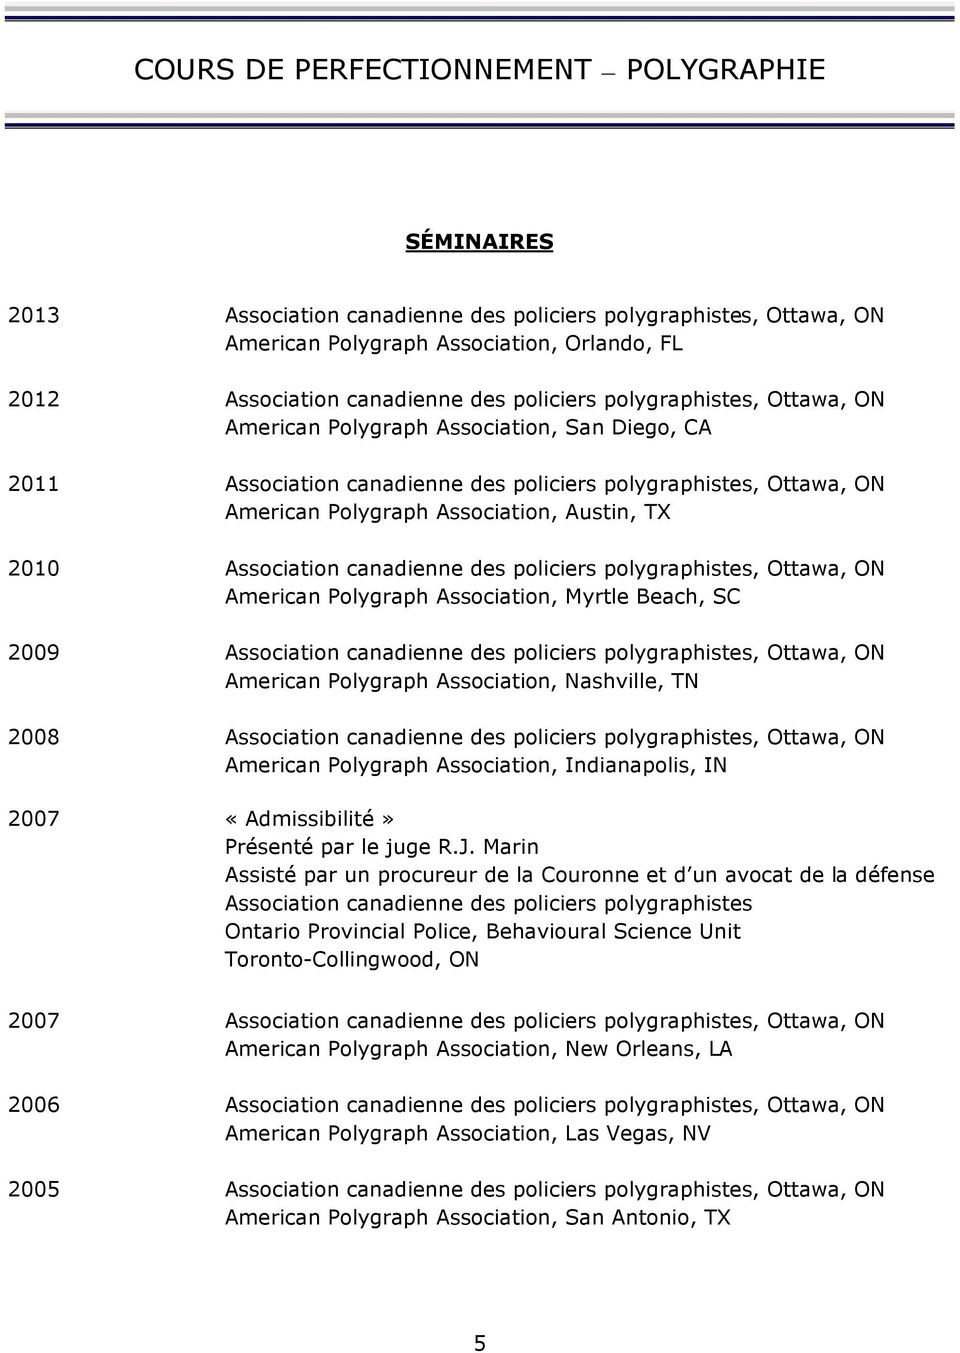 Association canadienne des policiers polygraphistes, Ottawa, ON American Polygraph Association, Myrtle Beach, SC 2009 Association canadienne des policiers polygraphistes, Ottawa, ON American